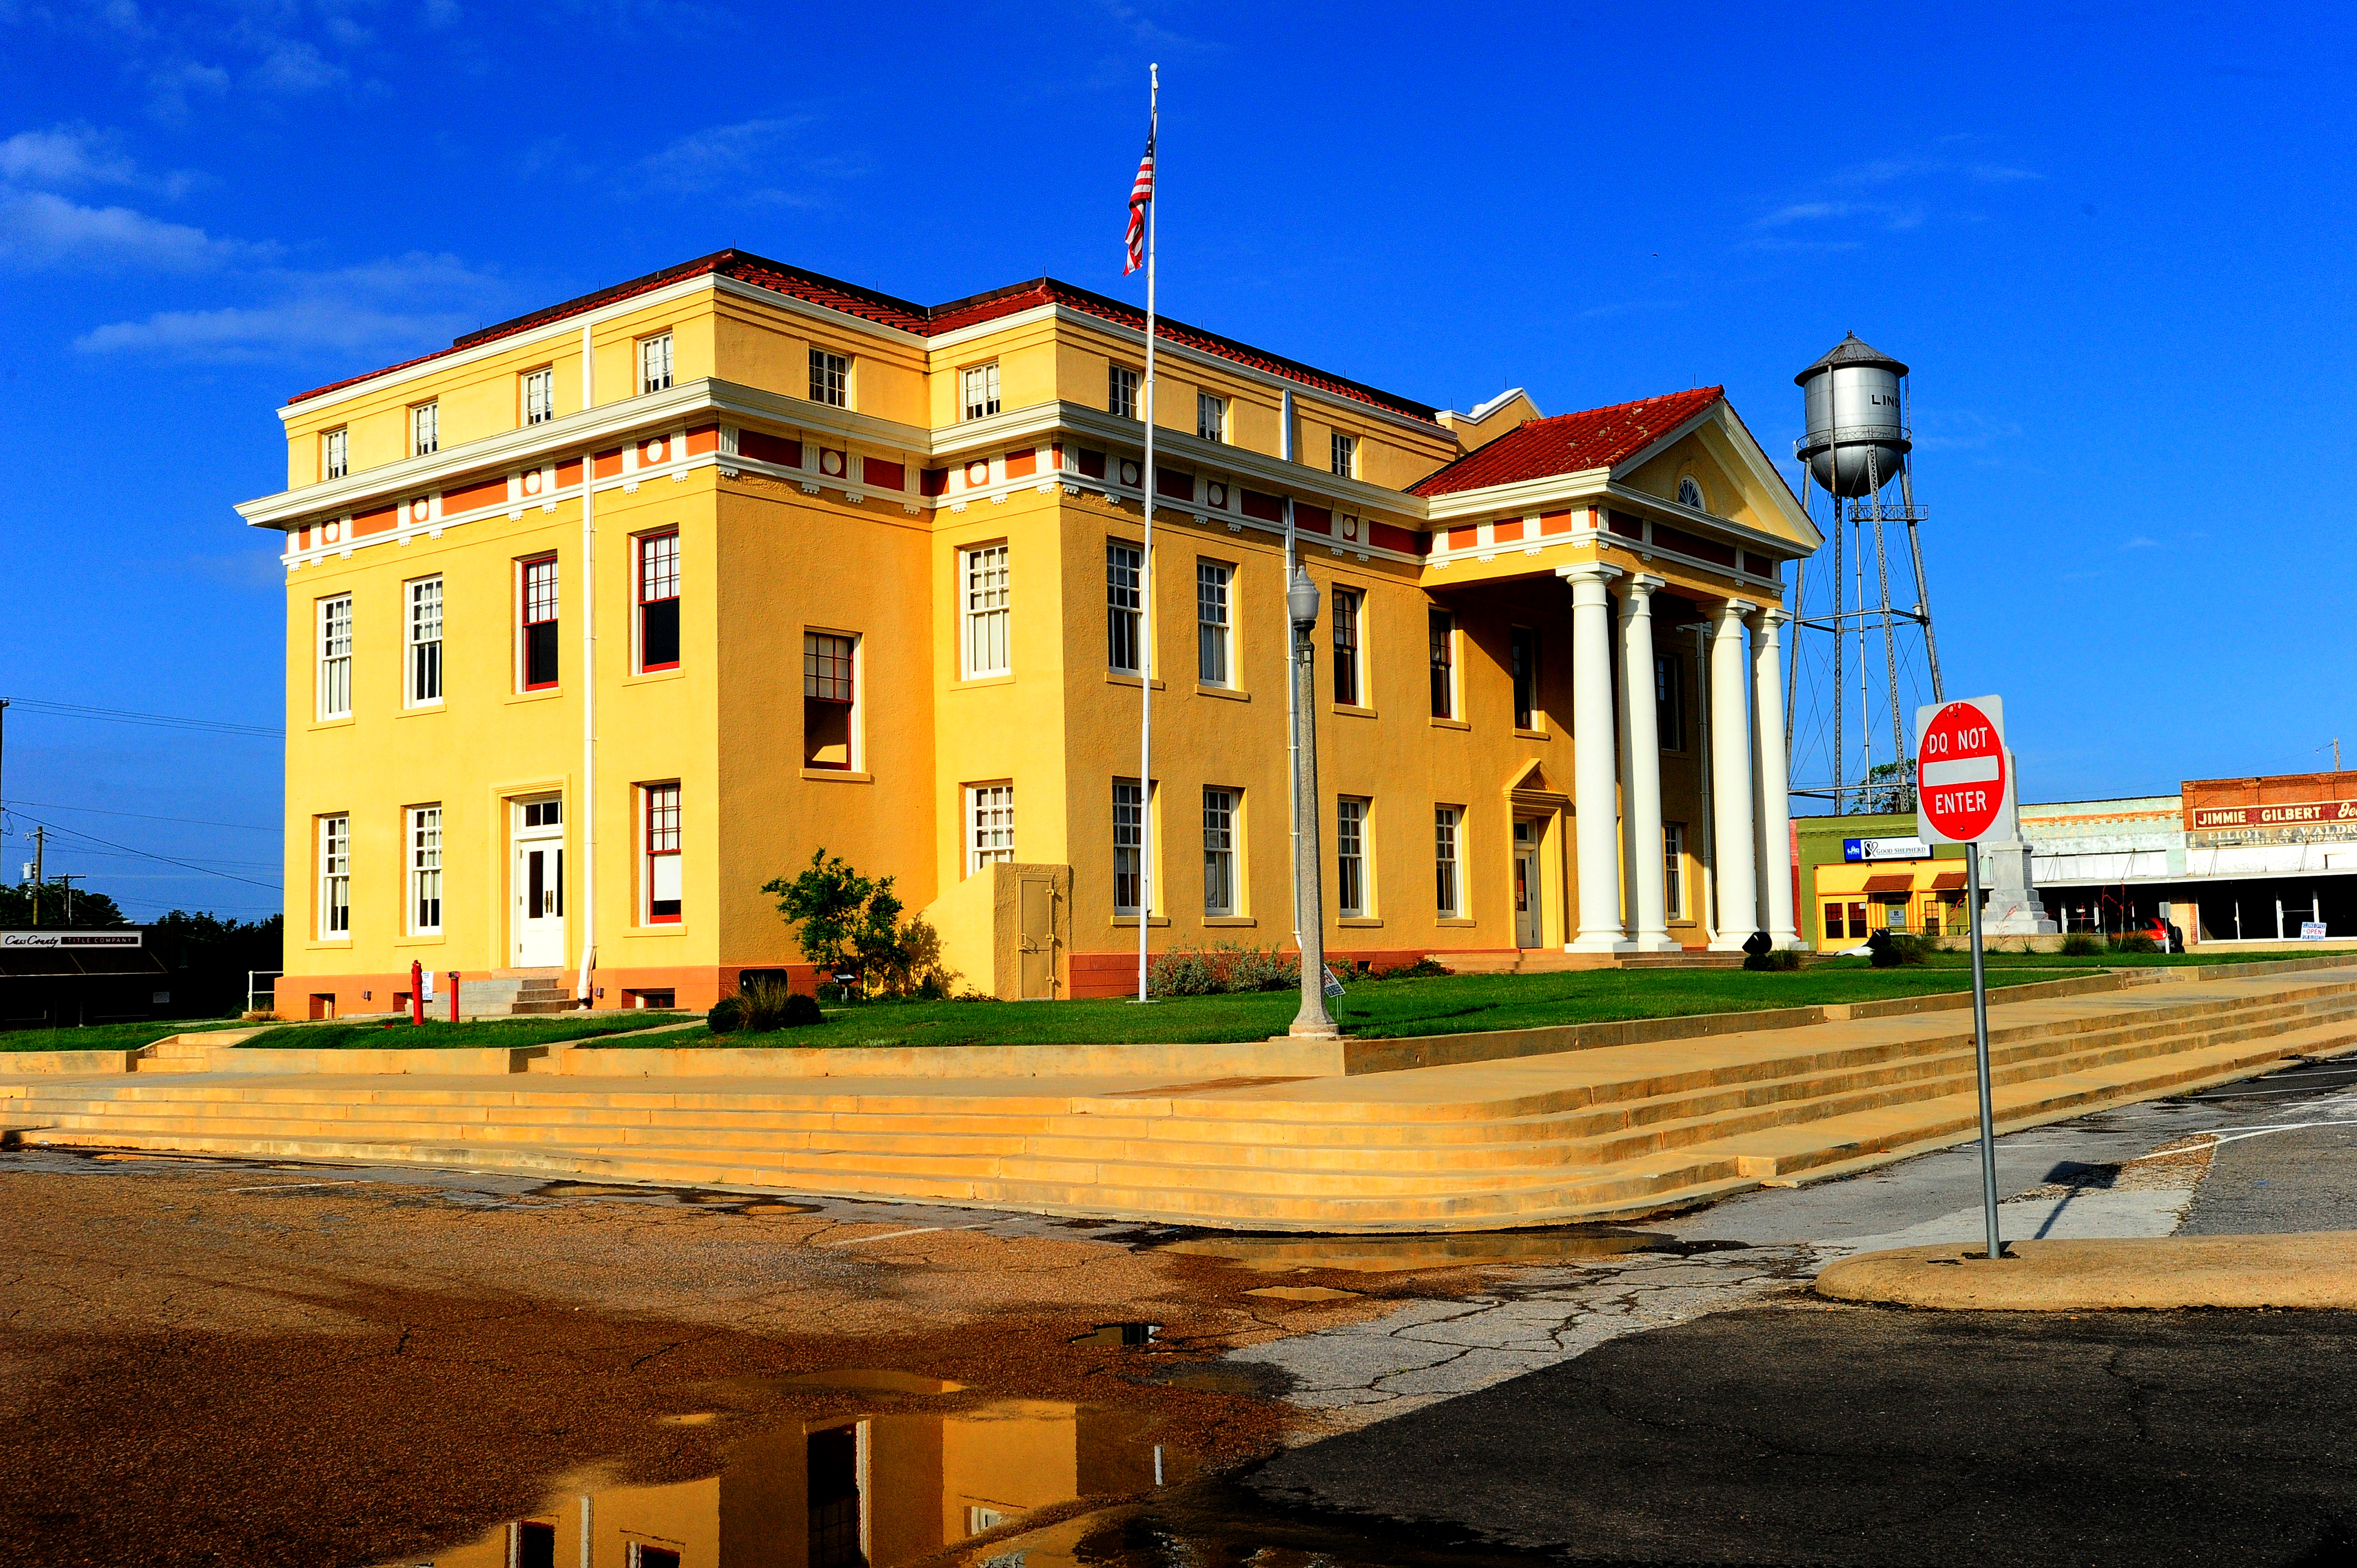 Cass County Court Records